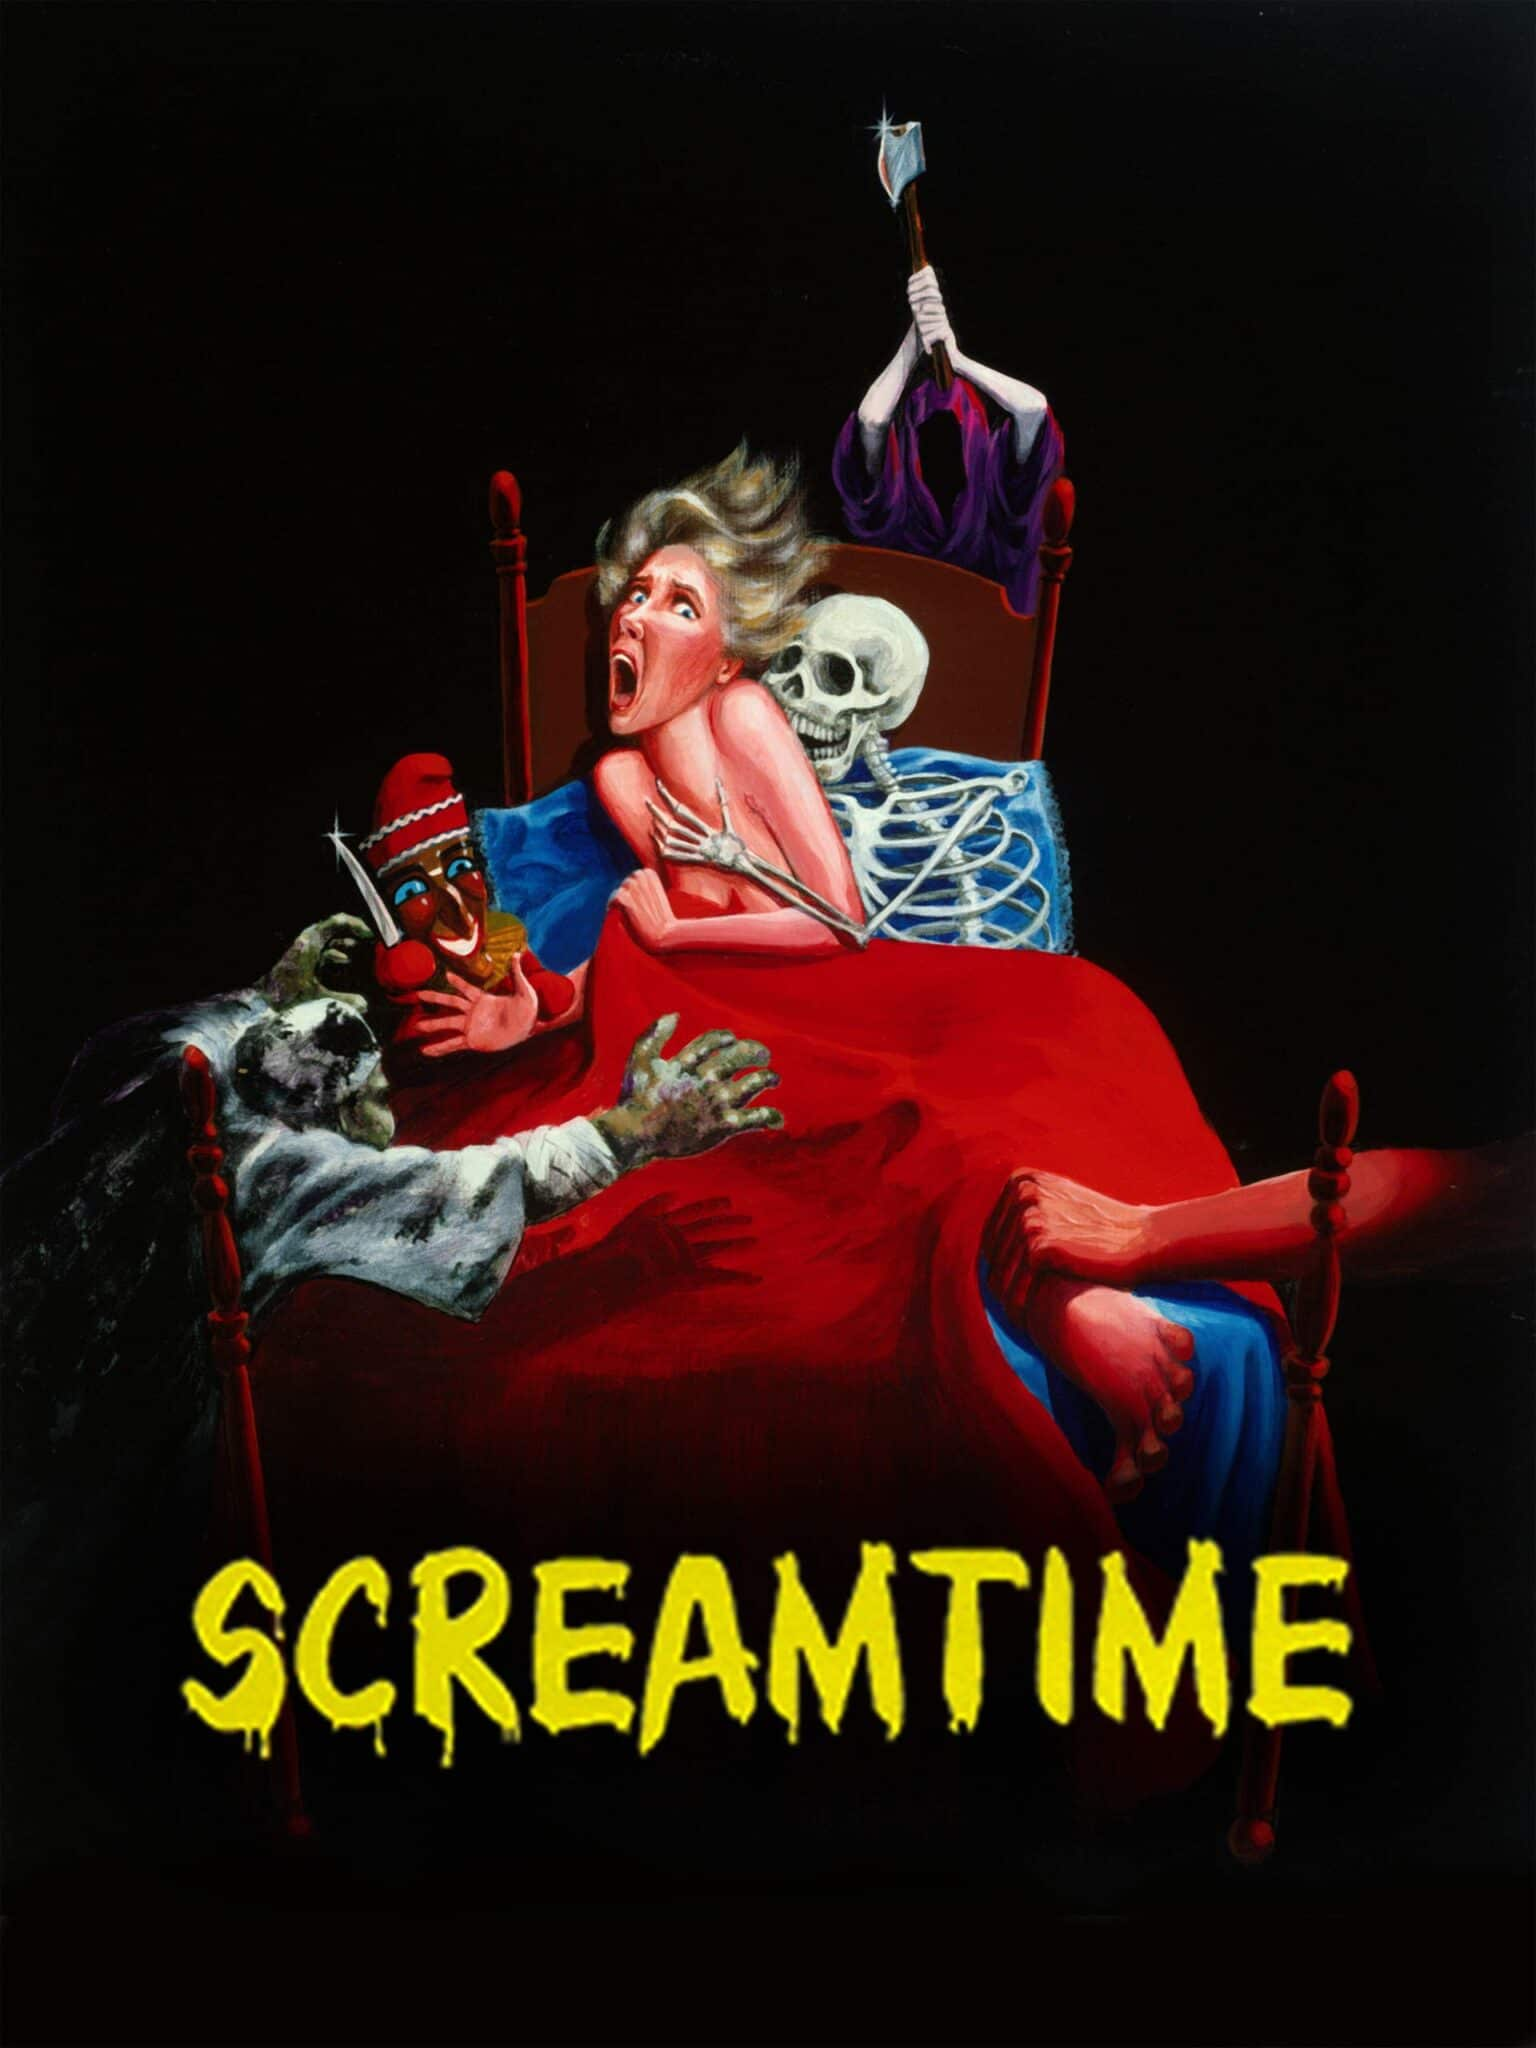 [Scared In Segments] British Horror Anthology SCREAMTIME is Both Charming and Kooky